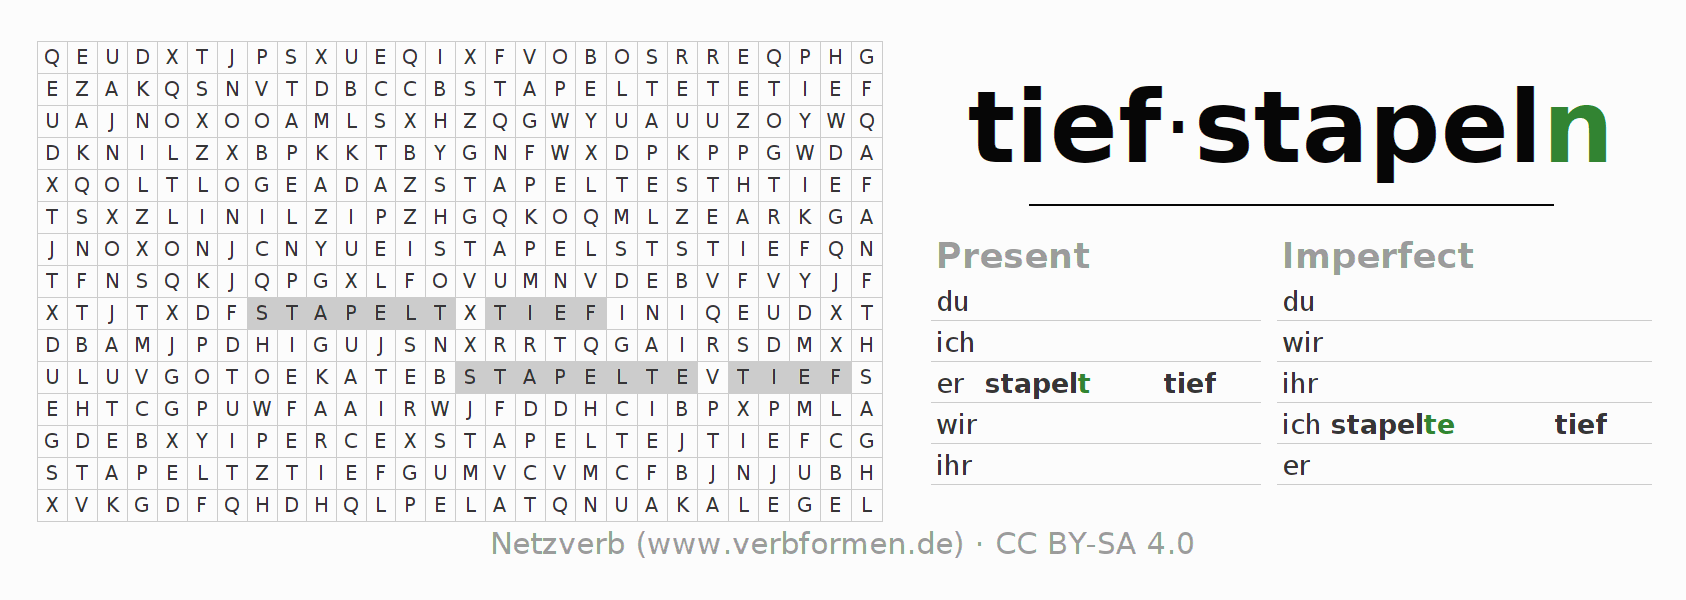 Word search puzzle for the conjugation of the verb tiefstapeln